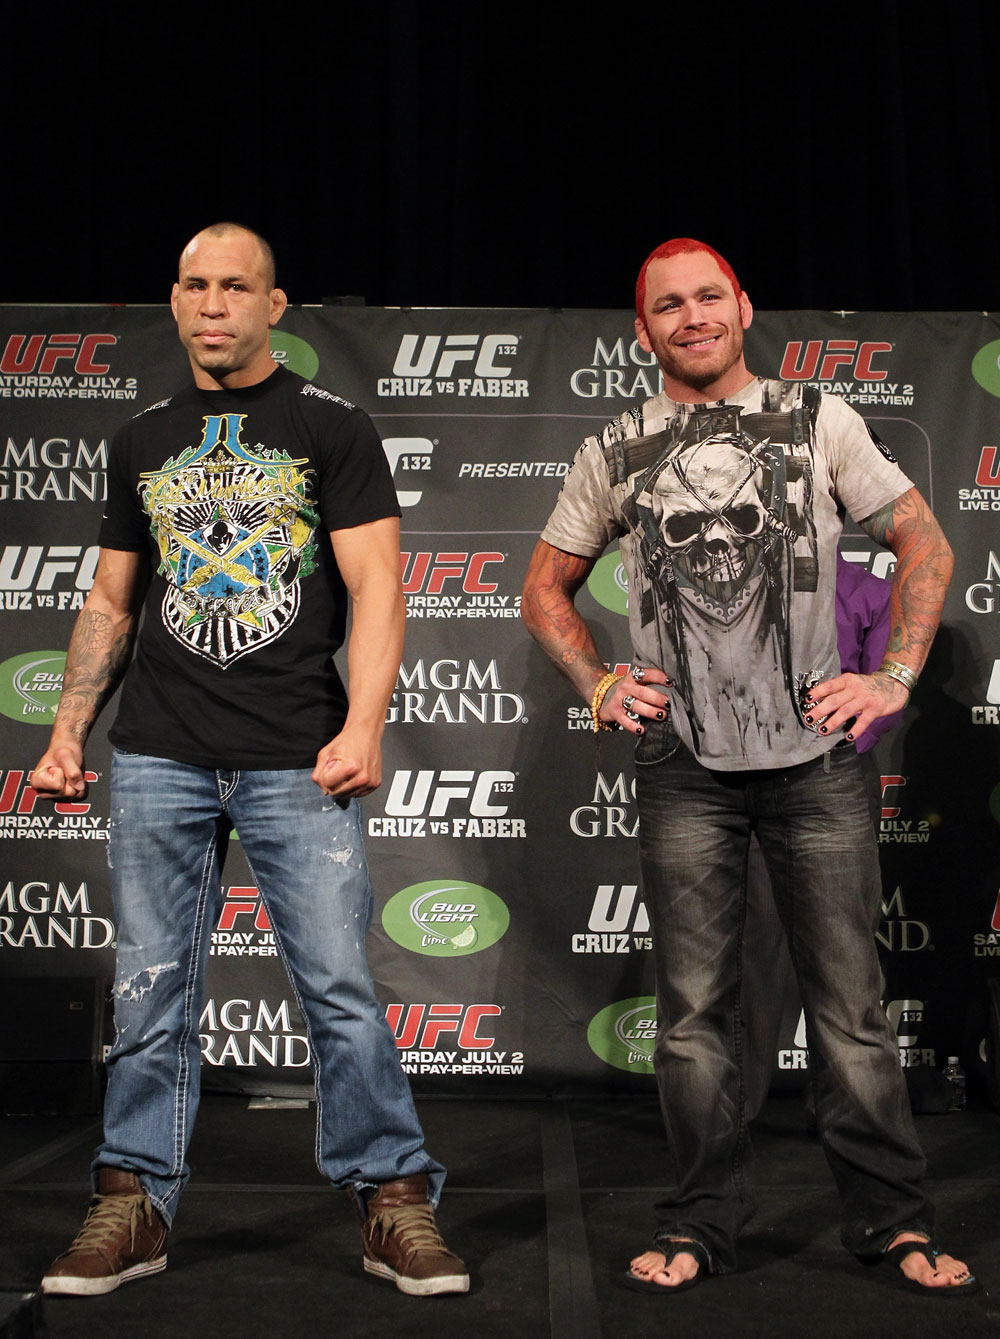 UFC 132 Pre-fight Press Conference: Wanderlei Silva vs. Chris Leben